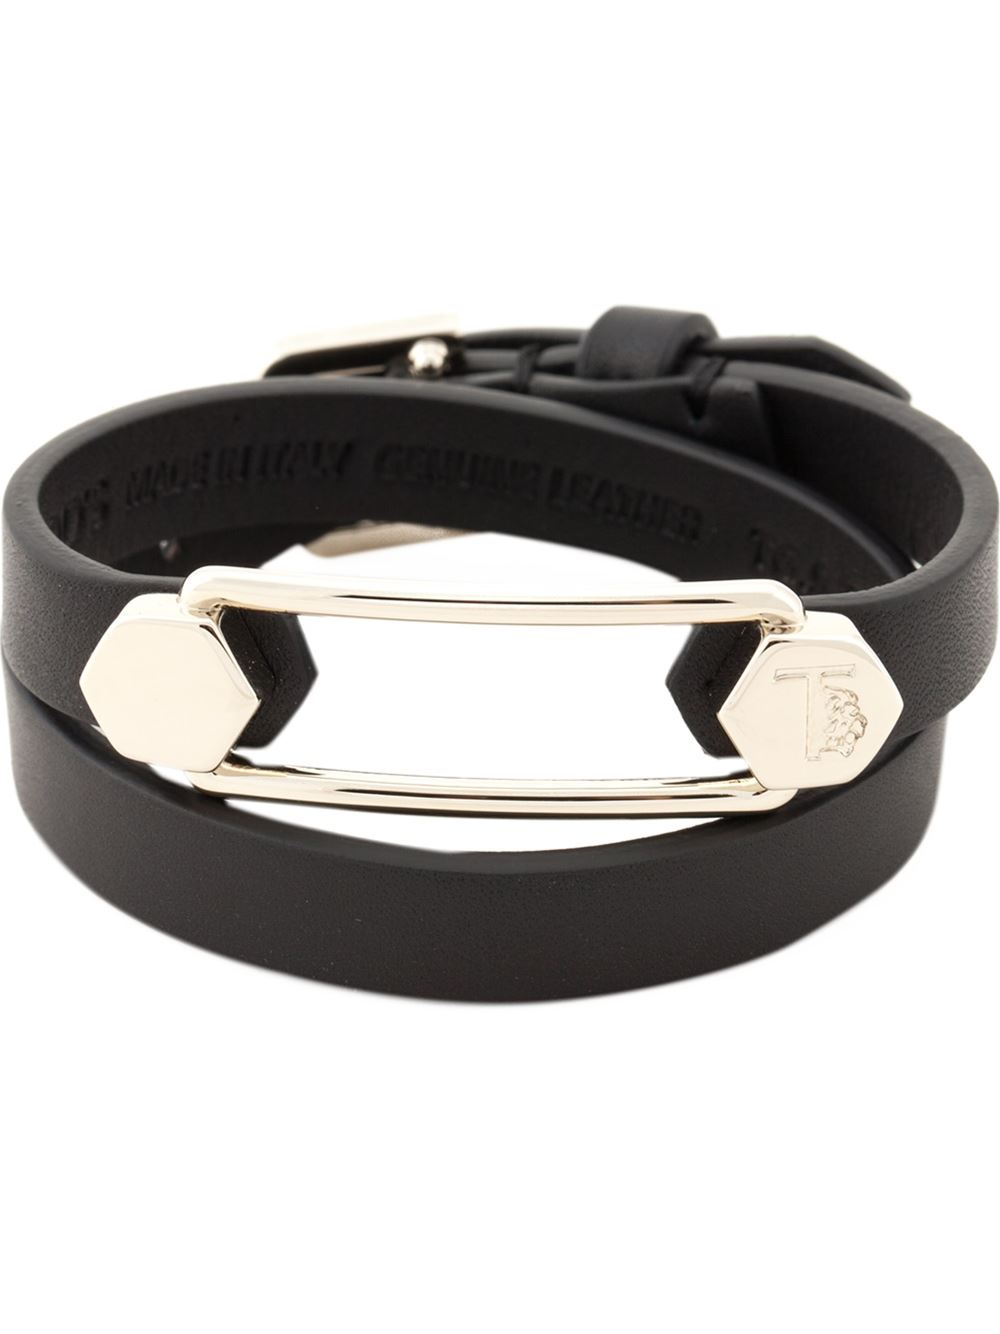 Lyst  TodS Leather And Metal Cuff Bracelet in Black